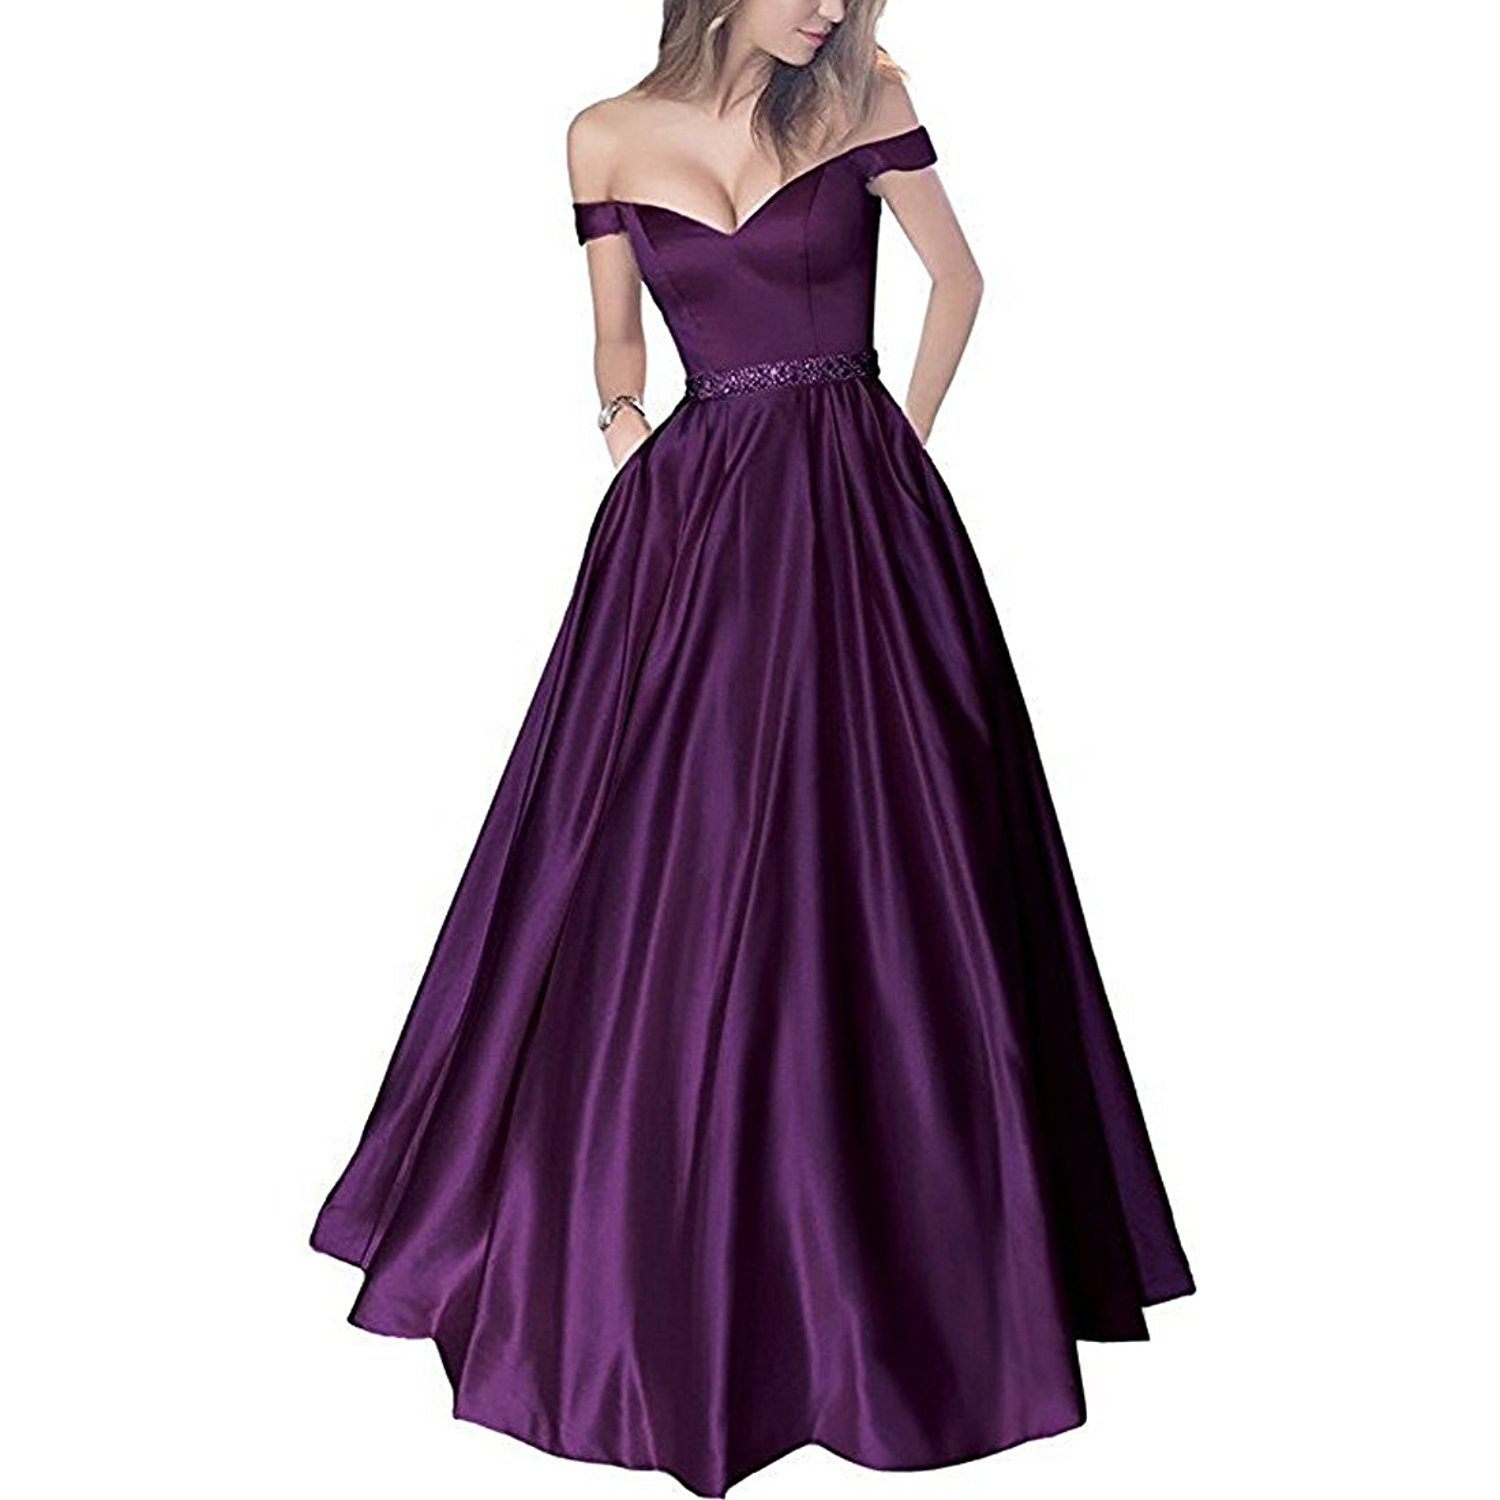 Lemai Off Shoulder Beaded Satin V Neck Corset Long Prom Dresses Evening Gowns at Amazon Women's Clothing store: